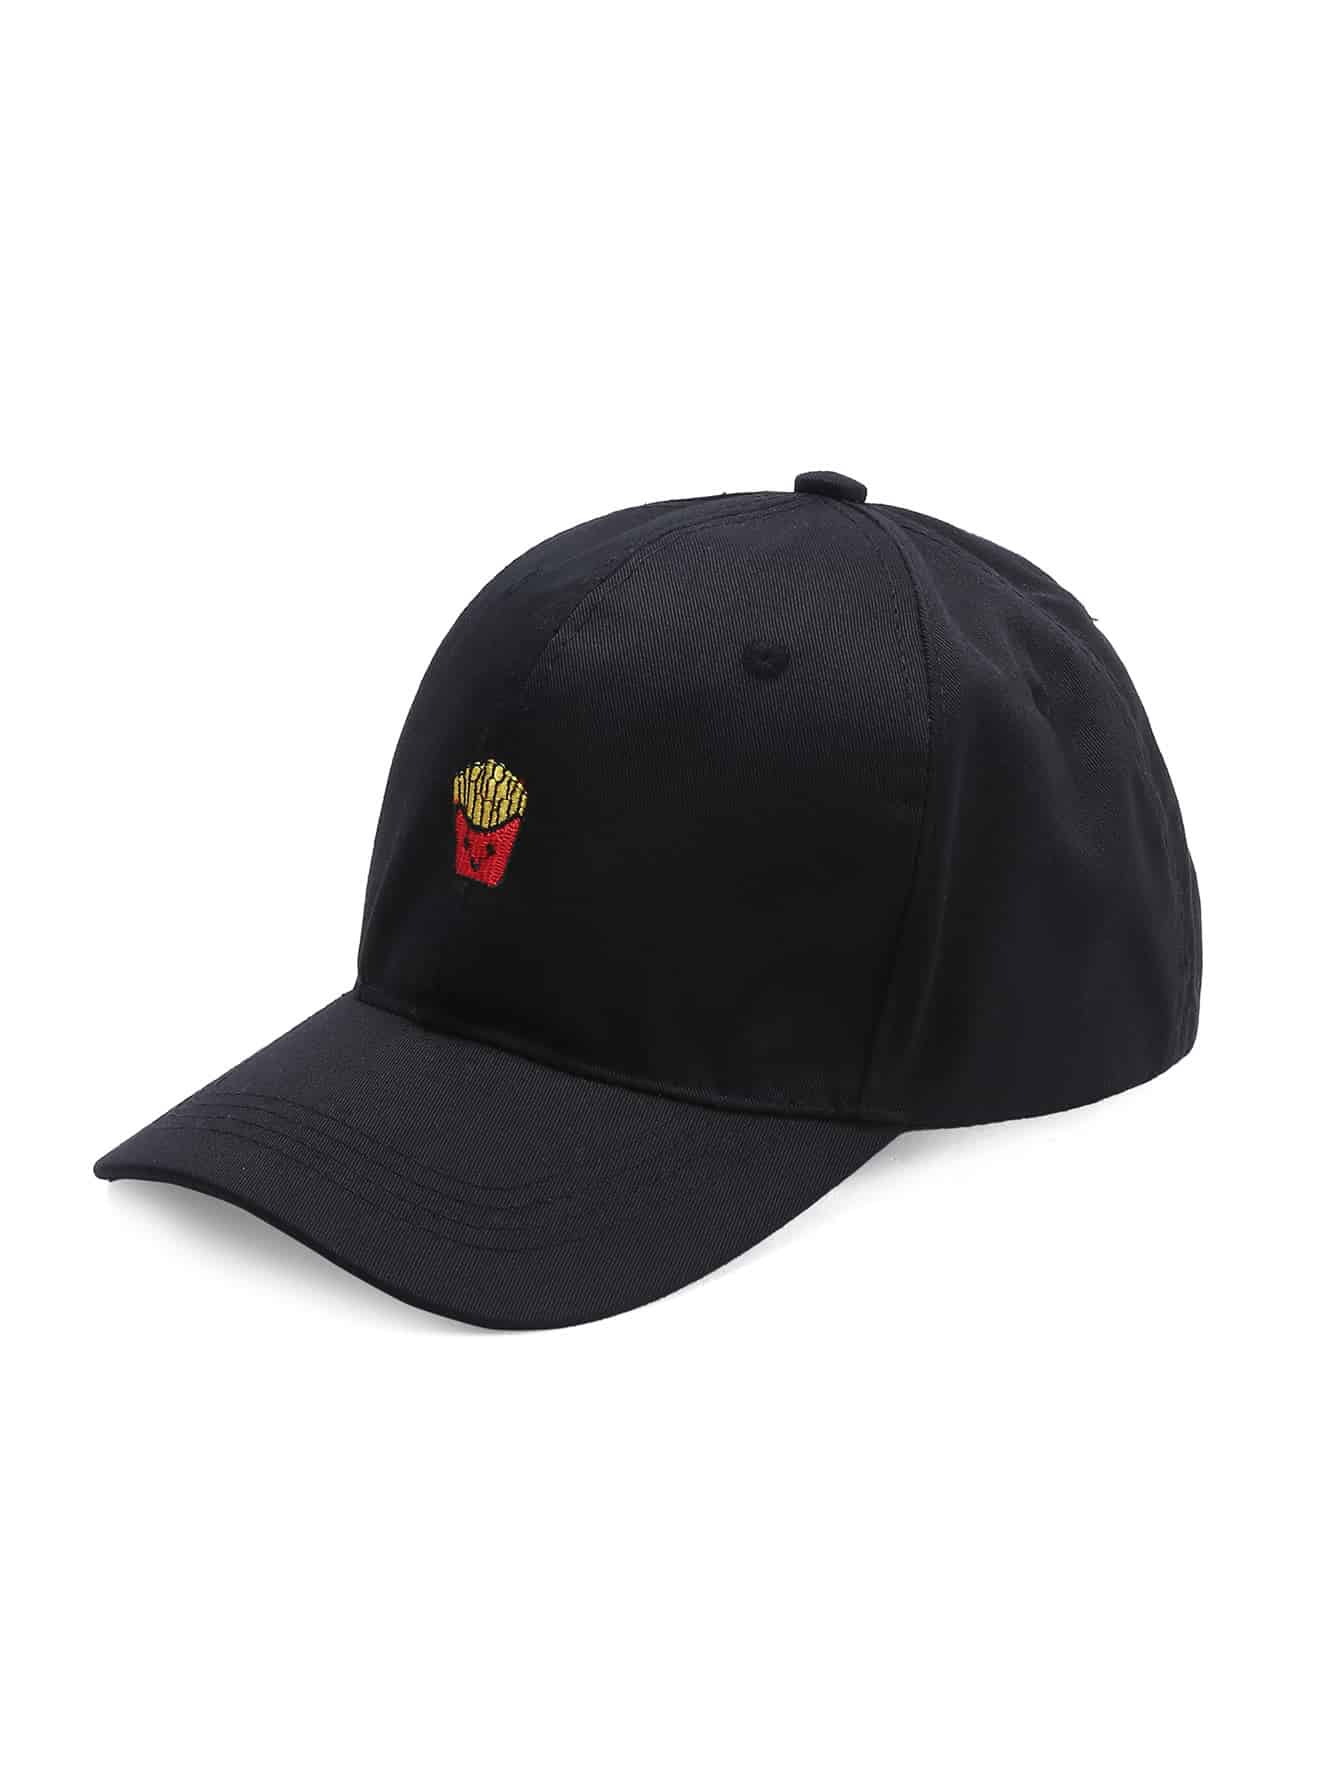 French Fries Embroidery Baseball Hat